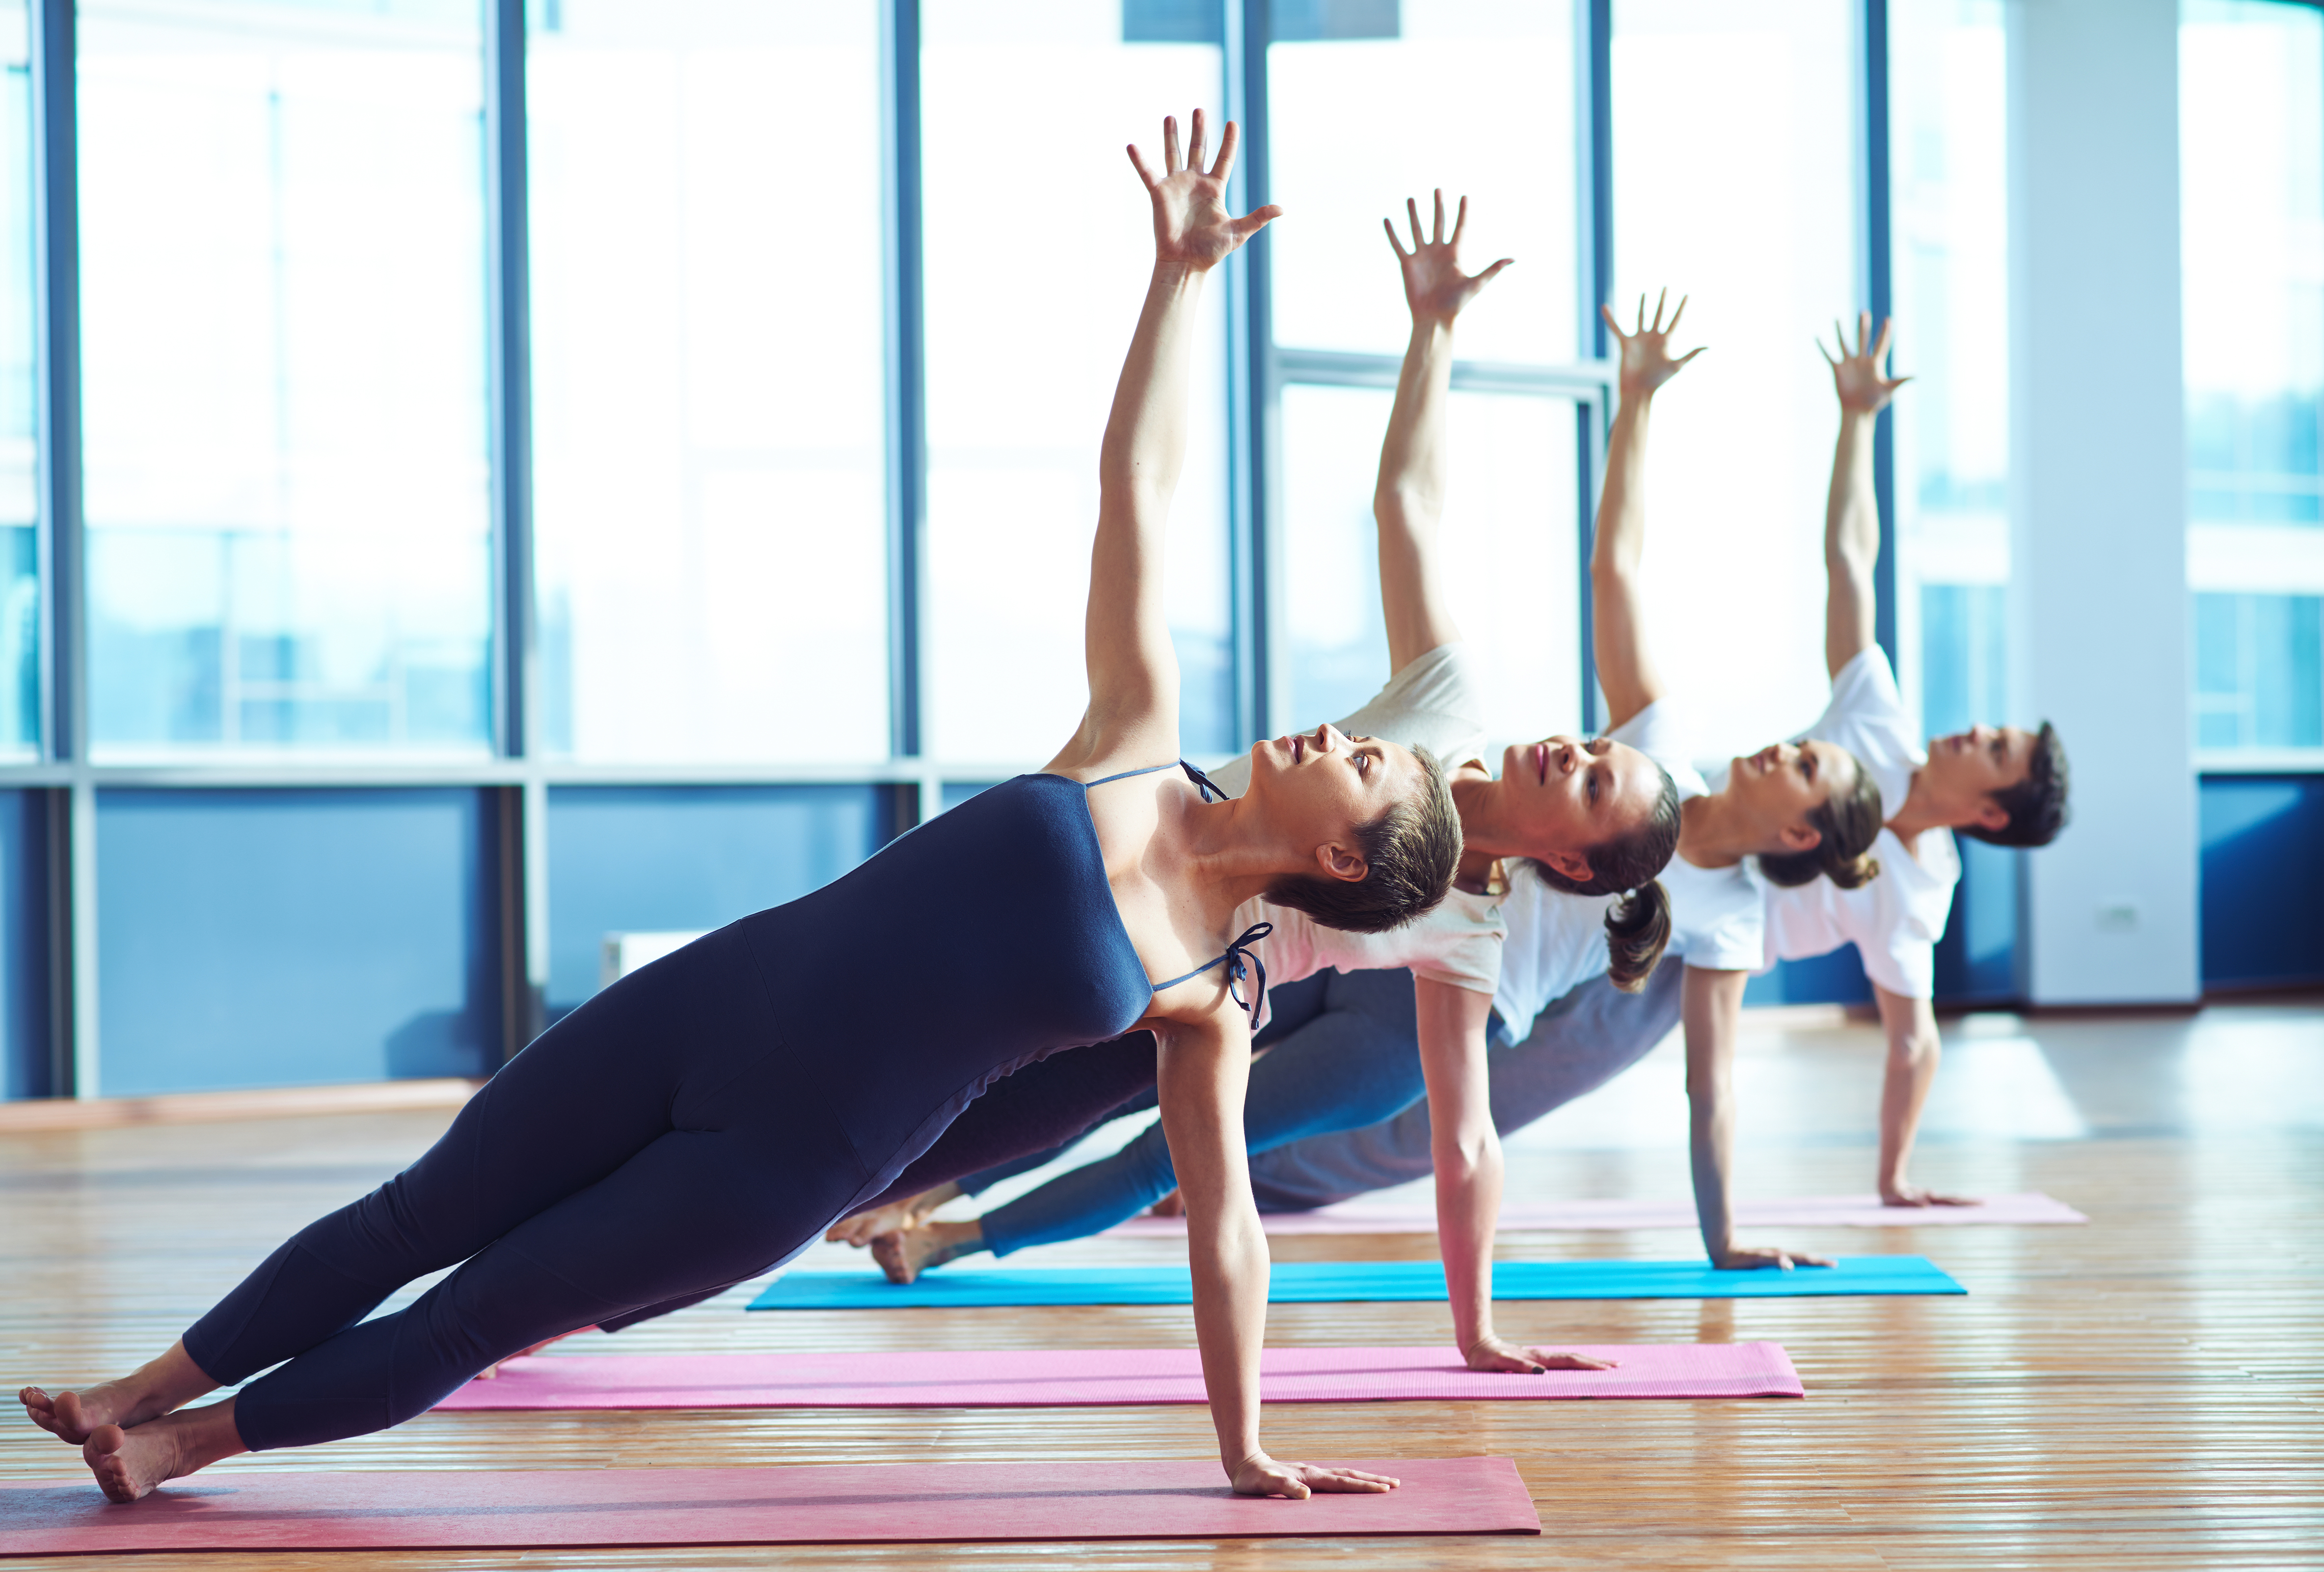 Group of young people practicing side plank pose during a class in gym